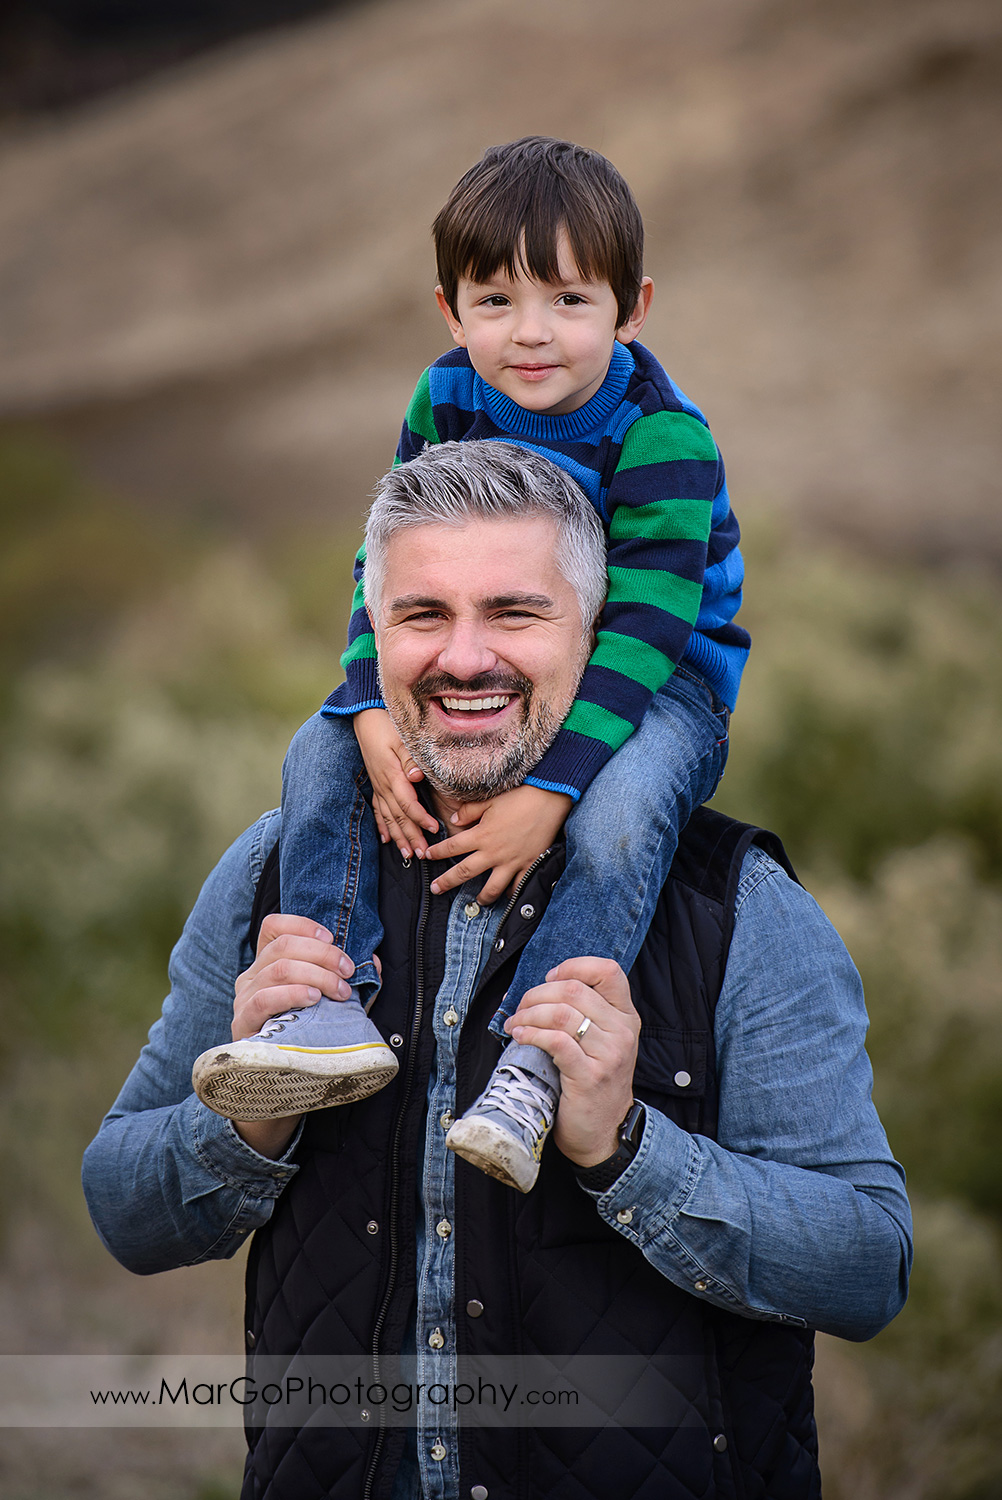 3/4 vertical portrait of father holding a boy on a piggyback, wearing in blue, green and grey clothes looking into camera during family session at Diablo Foothills Regional Park in Walnut Creek